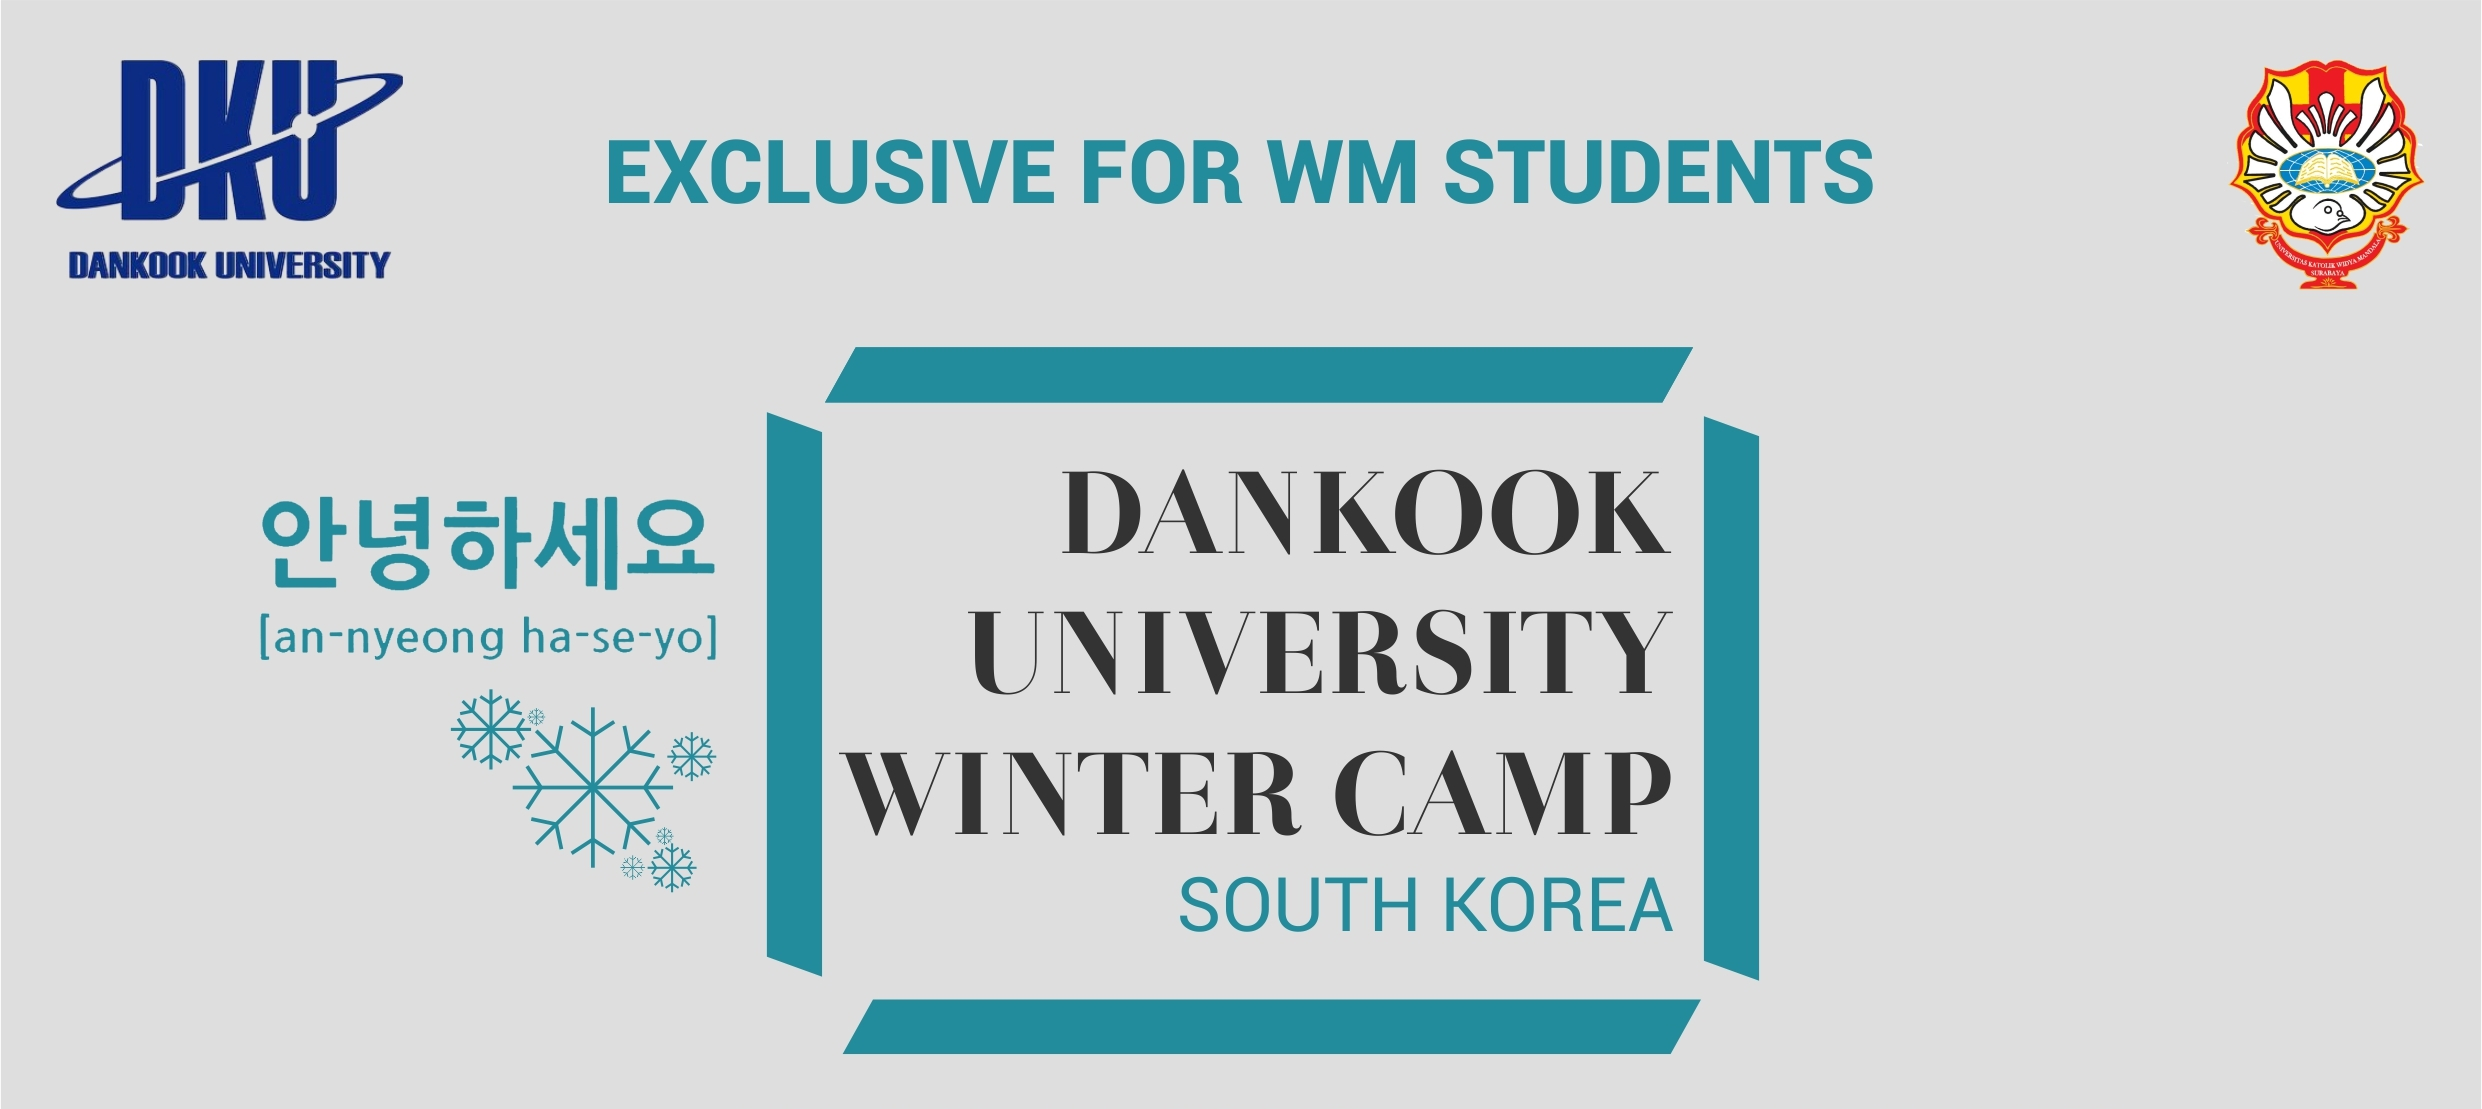 Banner-Revolution-Slider-Pengumuman-Seleksi-Peserta-Dankook-Univ-Winter-Camp-2018